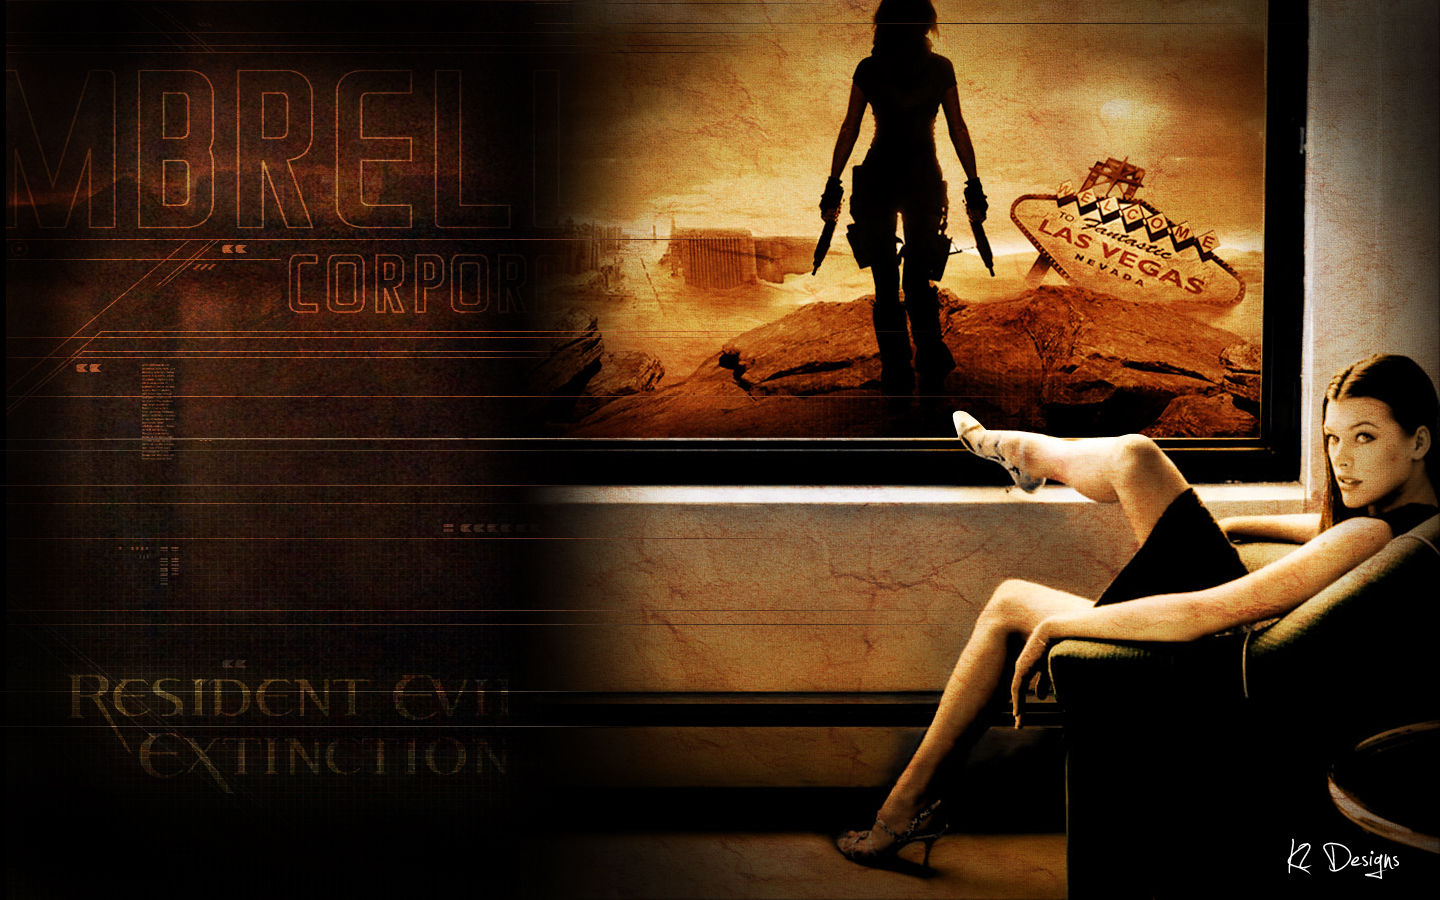 Resident Evil Extinction by onlyK2 on DeviantArt